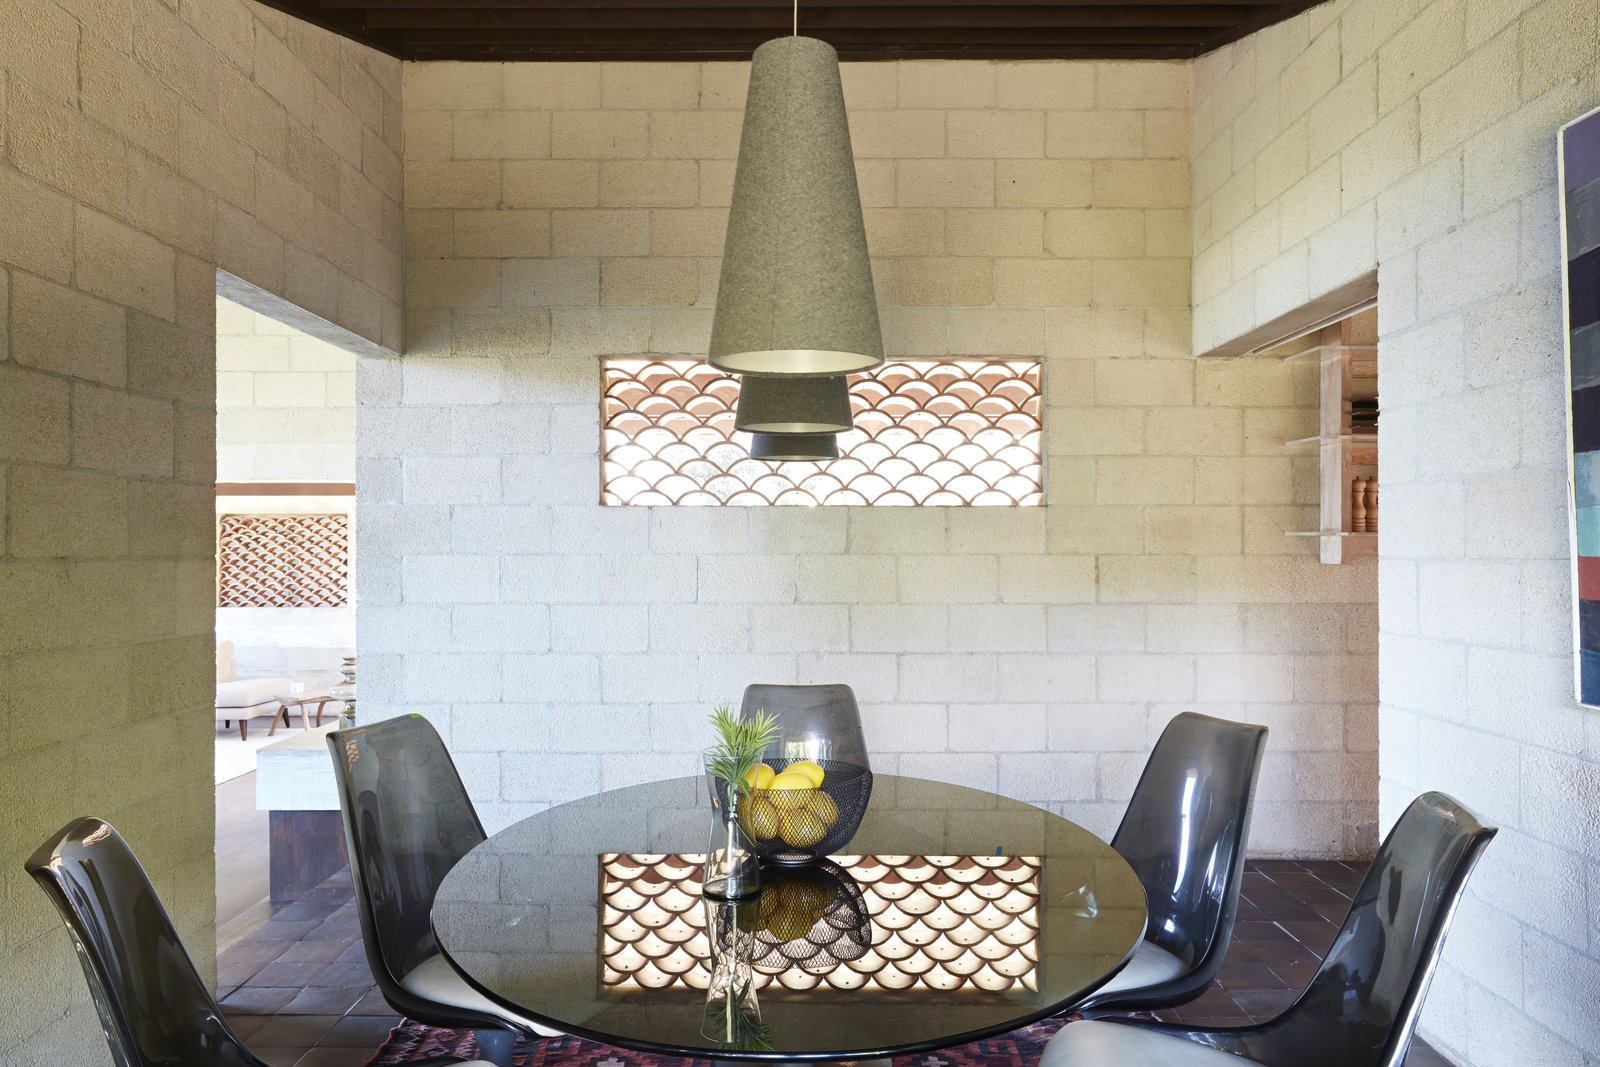 Dining Room, Chair, Table, Ceramic Tile Floor, and Pendant Lighting Light and air transmits through the wall cut-out in the dining room.  Photo 11 of 19 in A Famed Japanese Composer's Effortless Honolulu Hideout Asks $2.95M